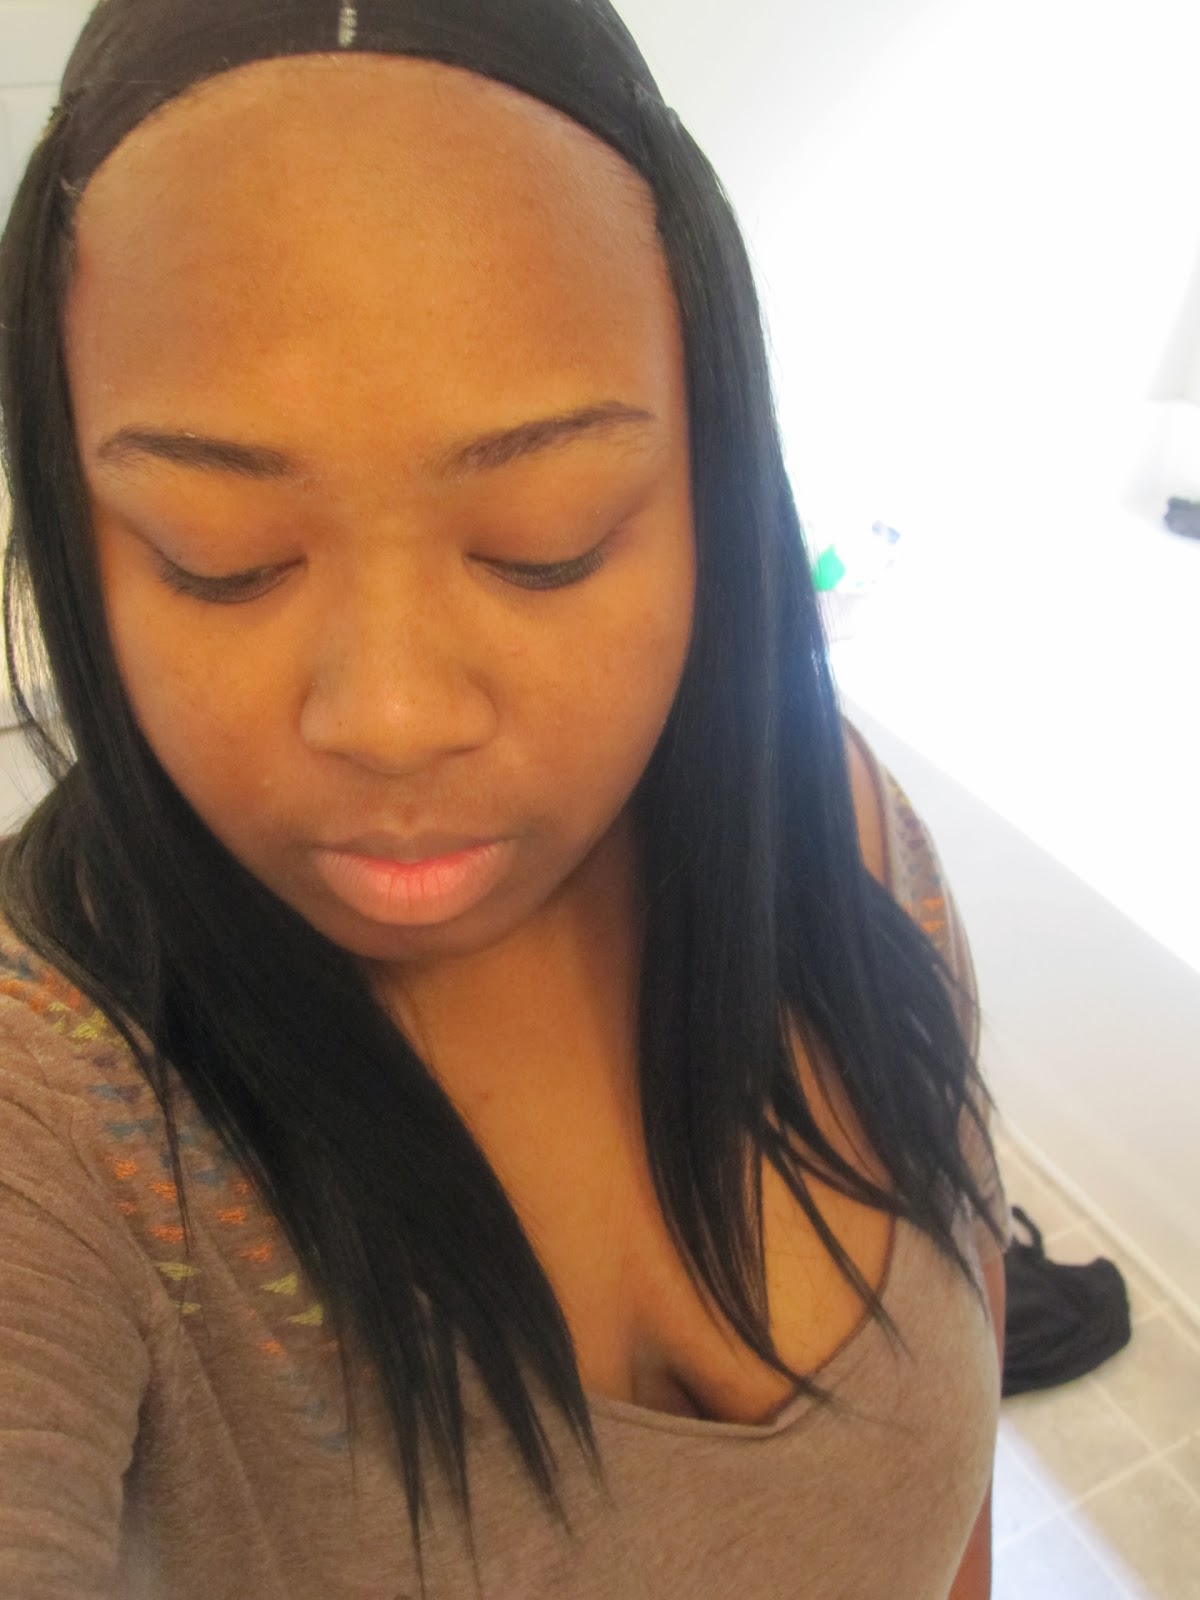 Bad Invisible Part Weave 7)once i had about a pinky's worth of space ...